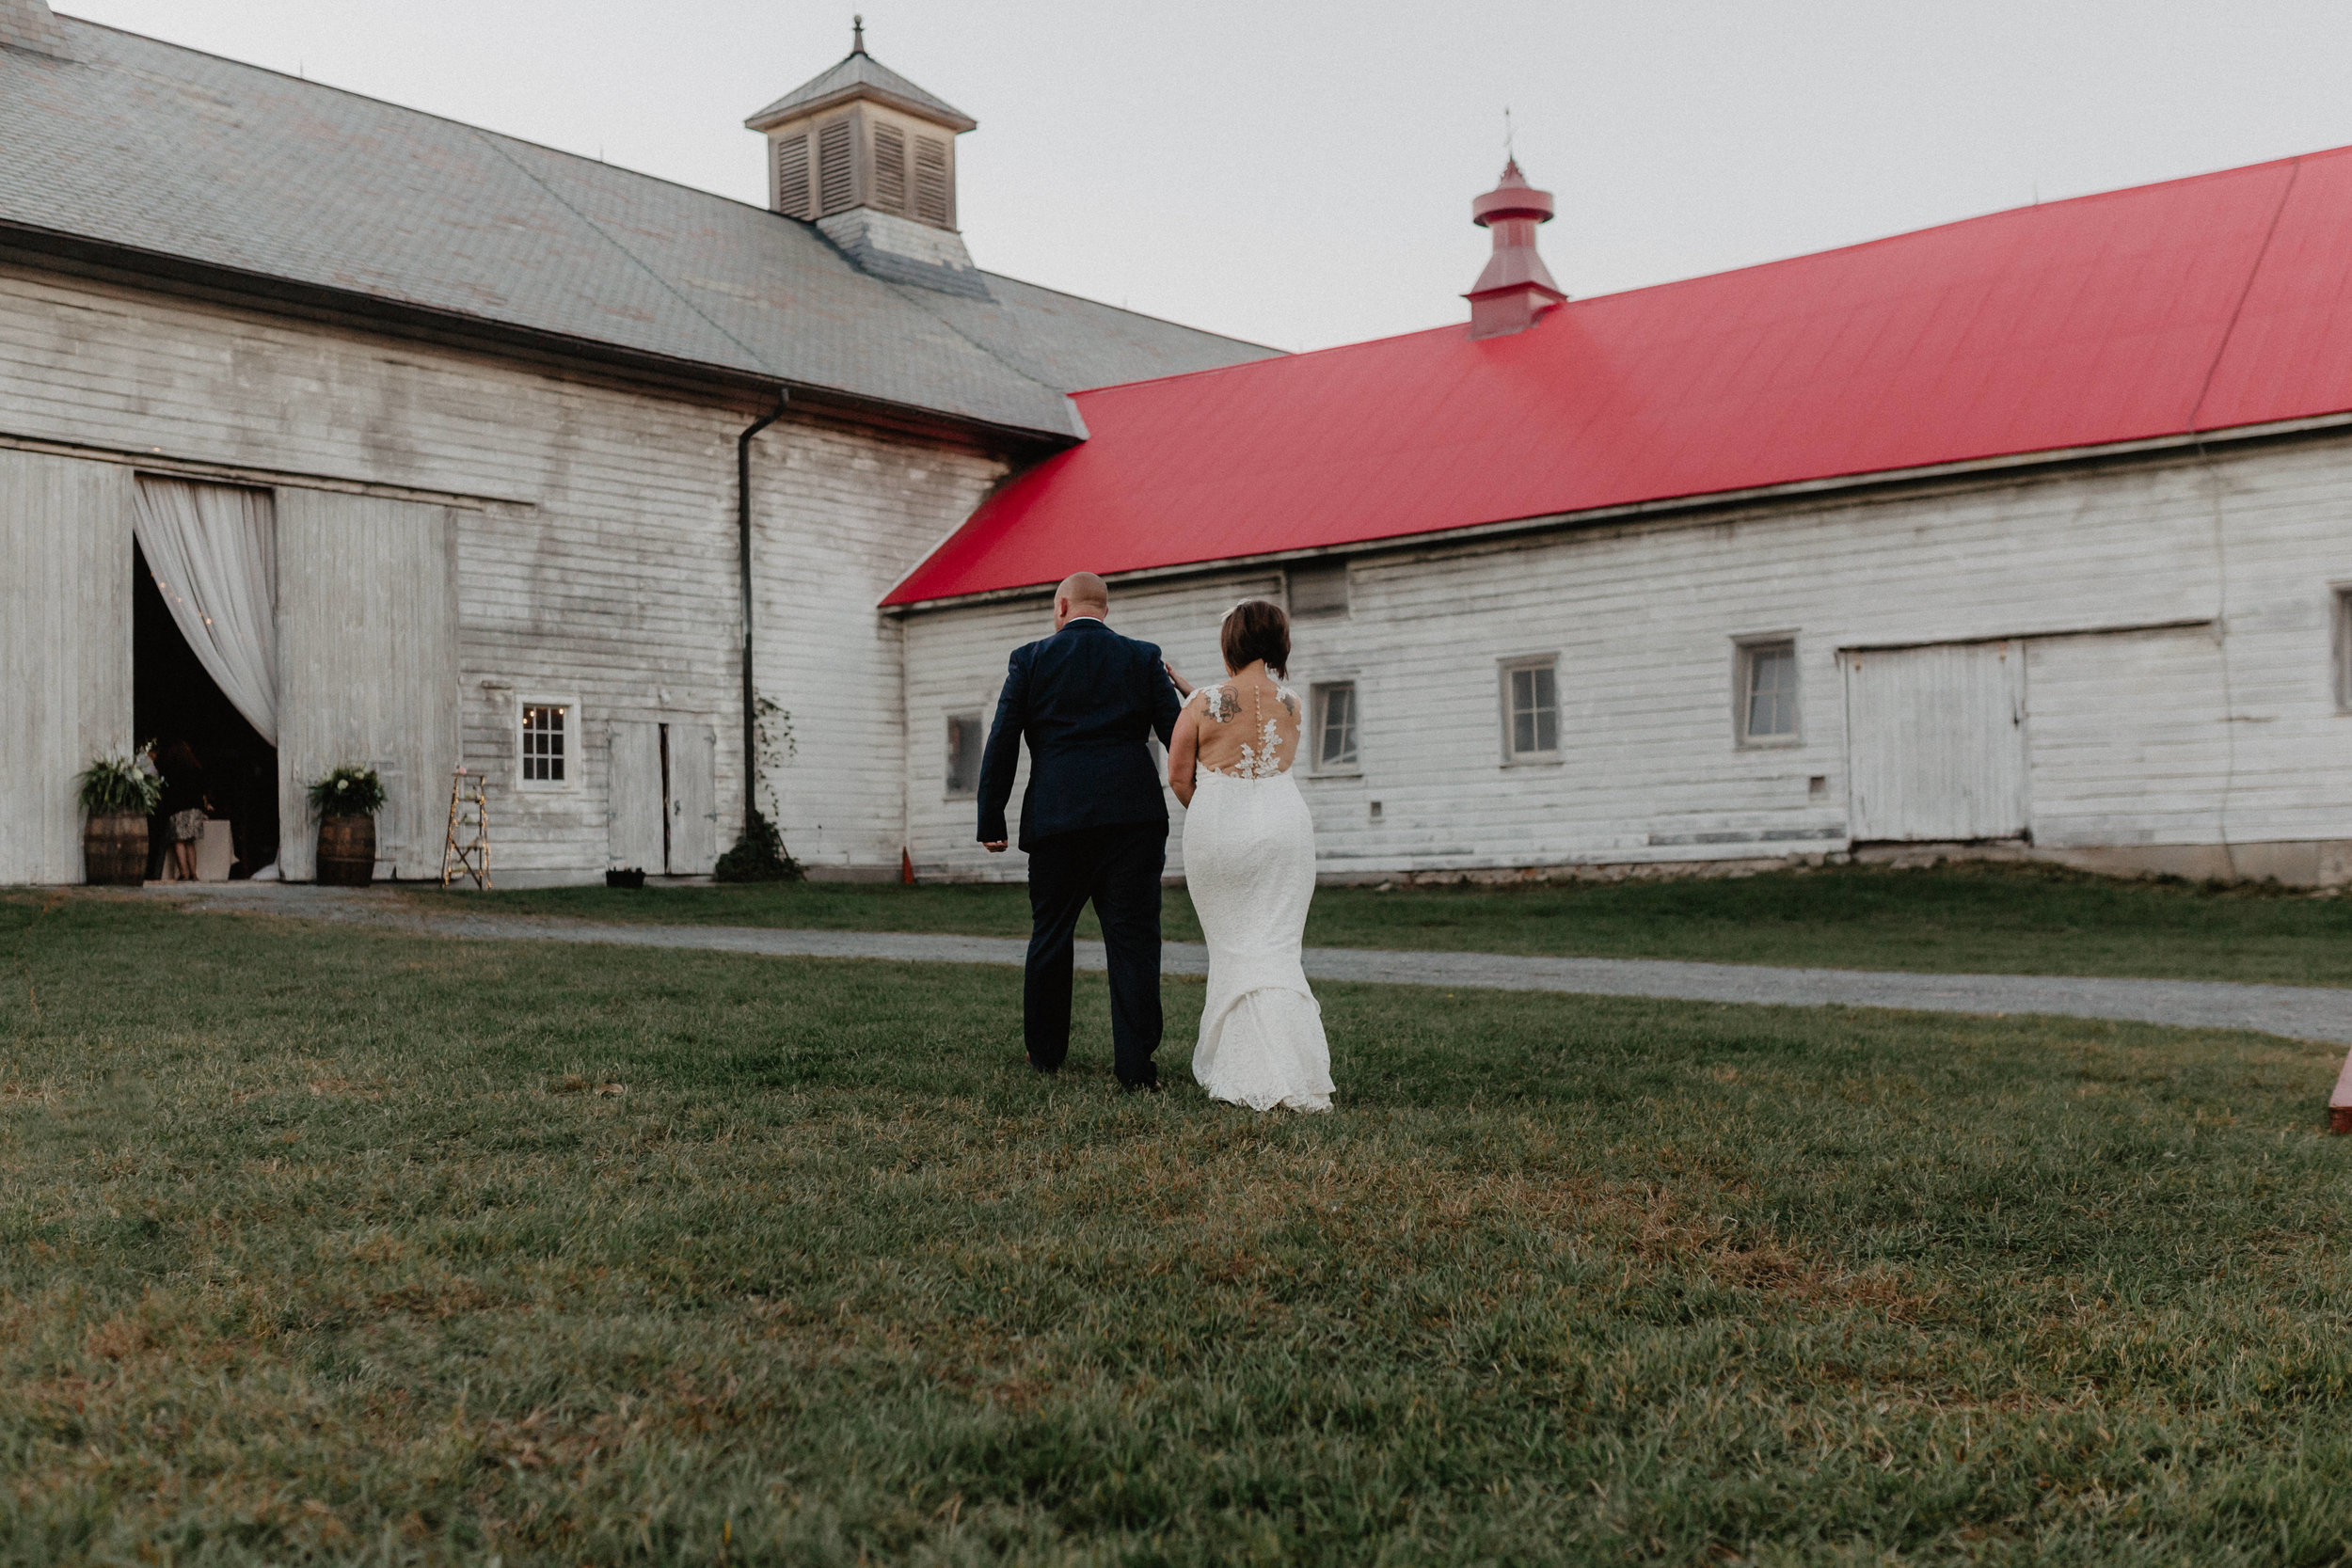 shaker_heritage_barn_wedding_042.jpg